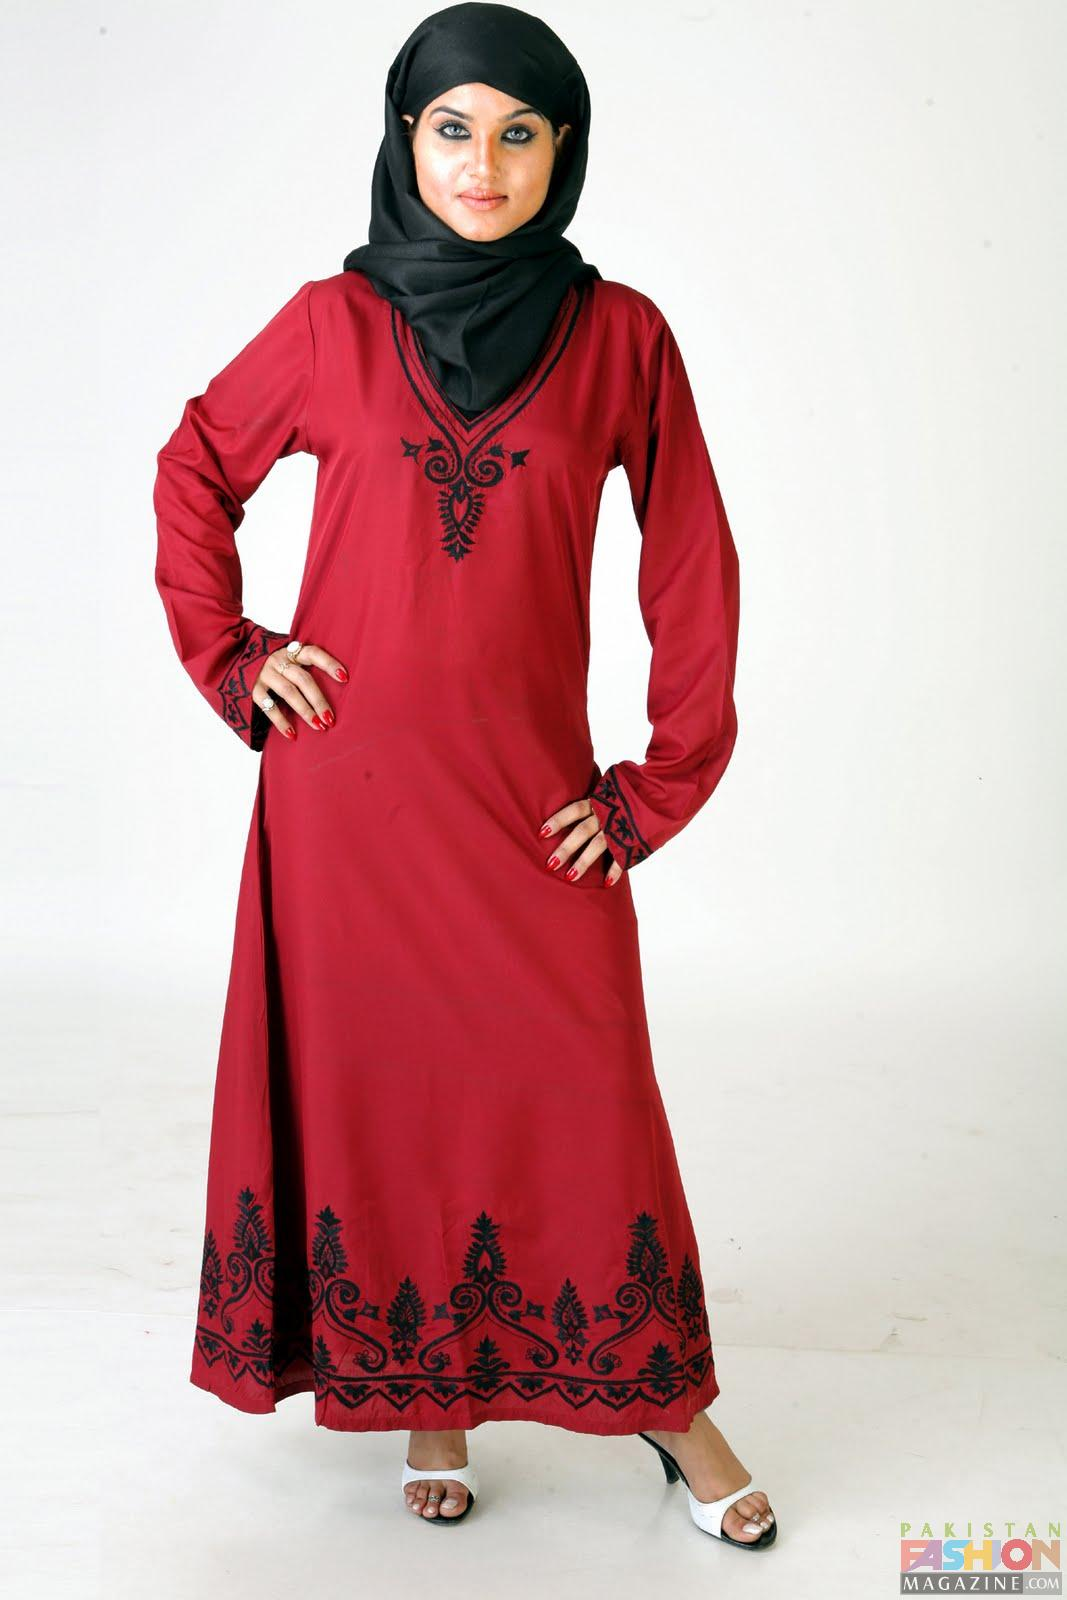 Beautiful When Many People Think Of Fashion And Style Only Prominent  It Doesnt Mean That You Should Dress Up Like A Ninja Or That You Have To Wear An Abaya The Black Robe That Arab Women Wear As Most People Think So As Long As You Keep